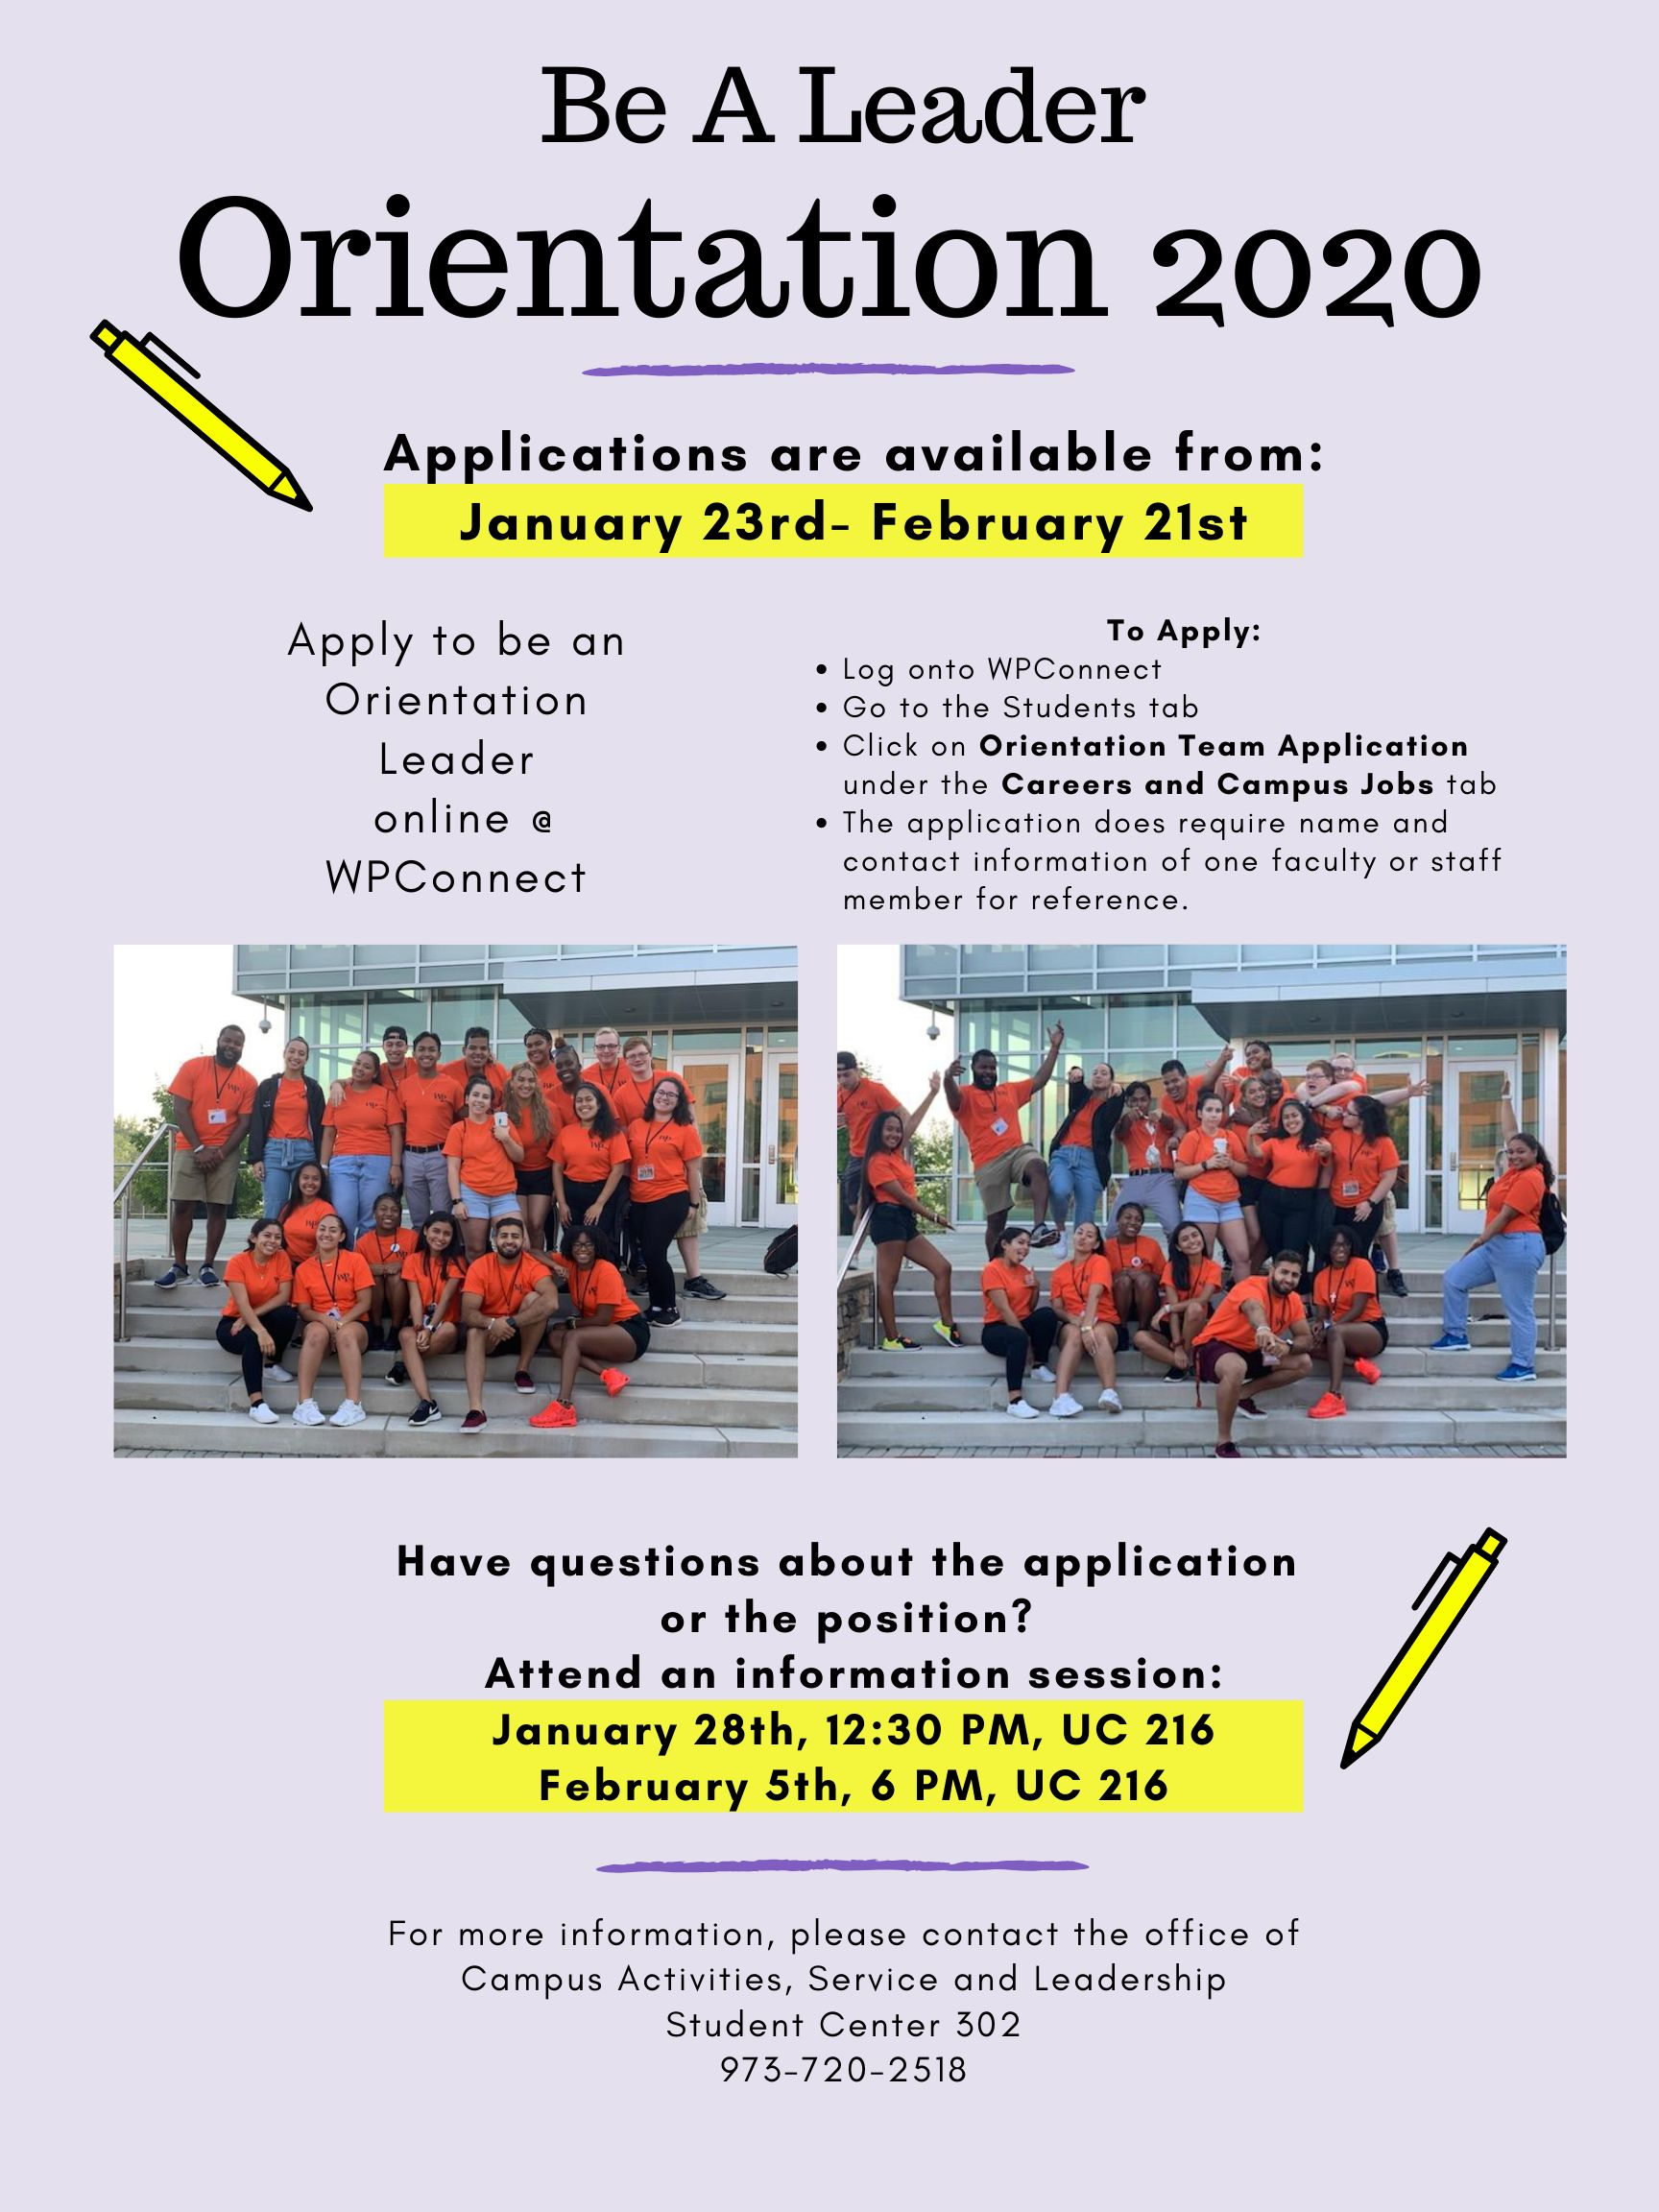 Orientation 2020 application